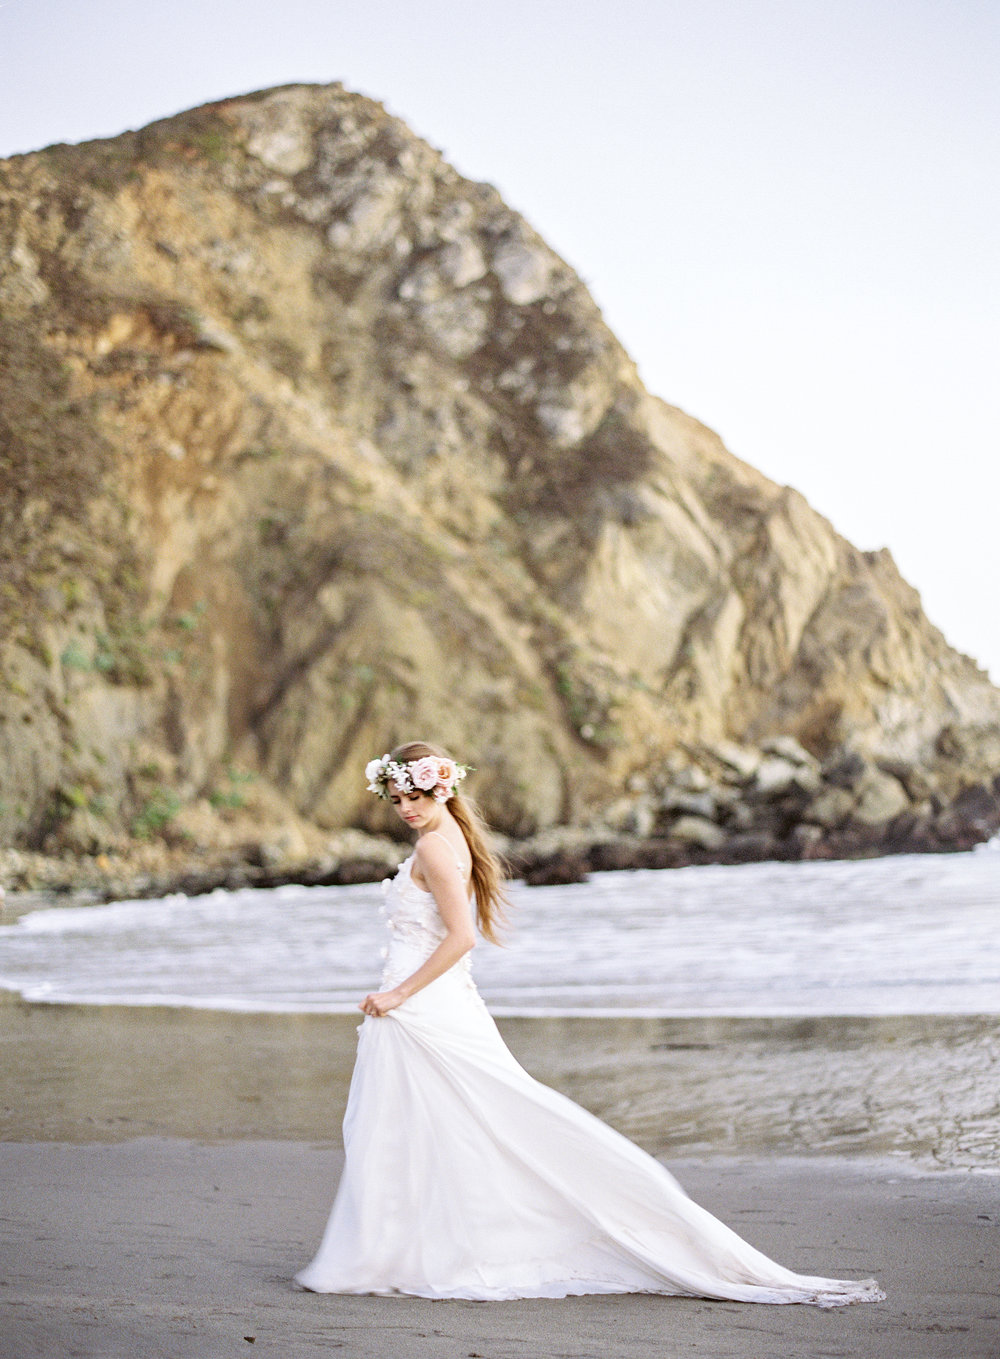 Big_Sur_by_Kayla_Barker_171.jpg